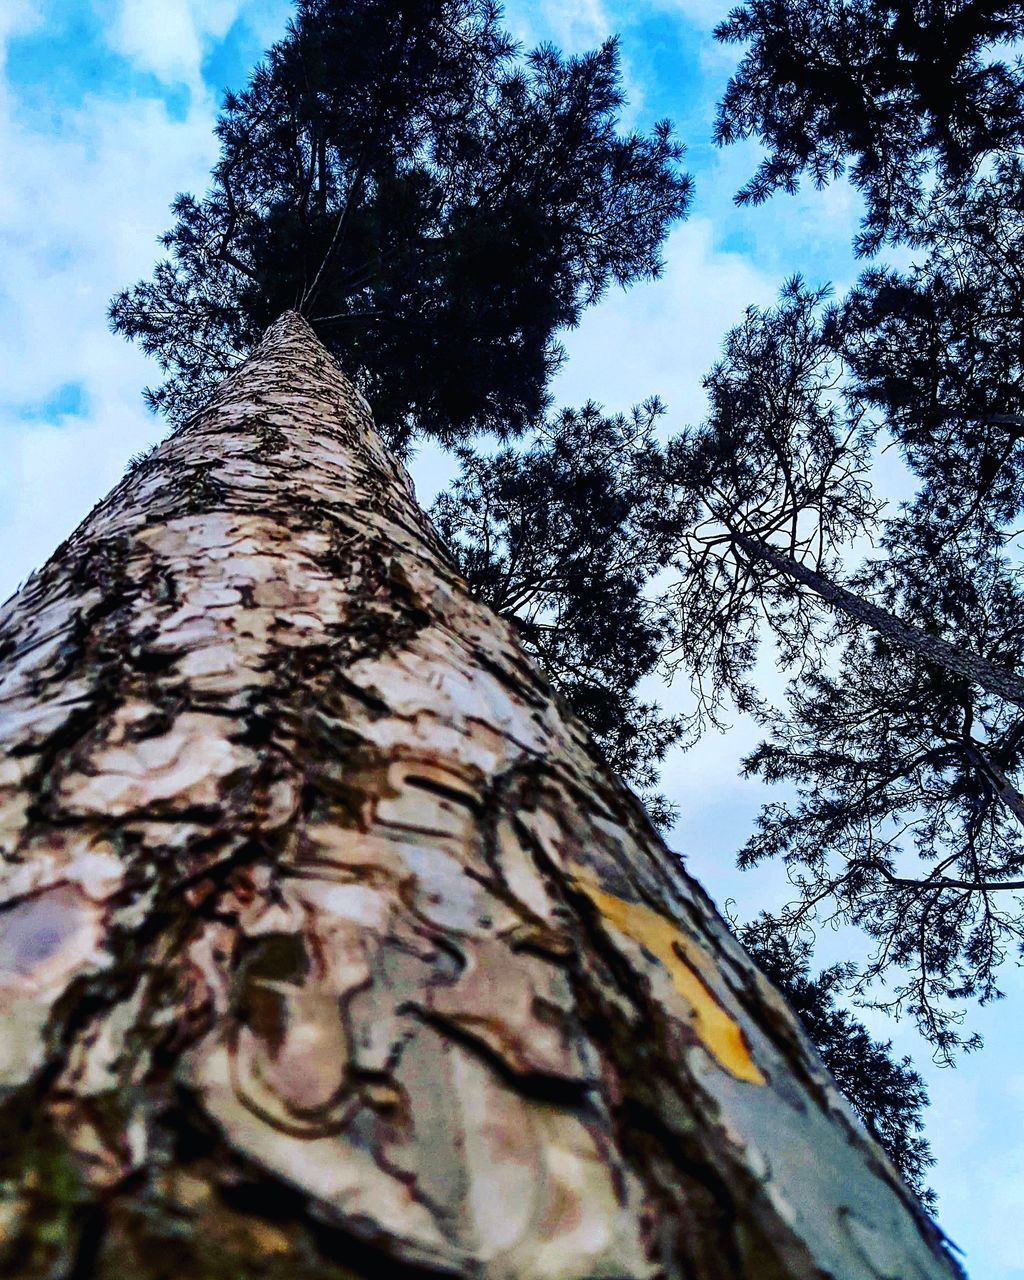 tree, low angle view, tree trunk, sky, day, nature, growth, outdoors, no people, bark, branch, rough, cloud - sky, textured, beauty in nature, built structure, close-up